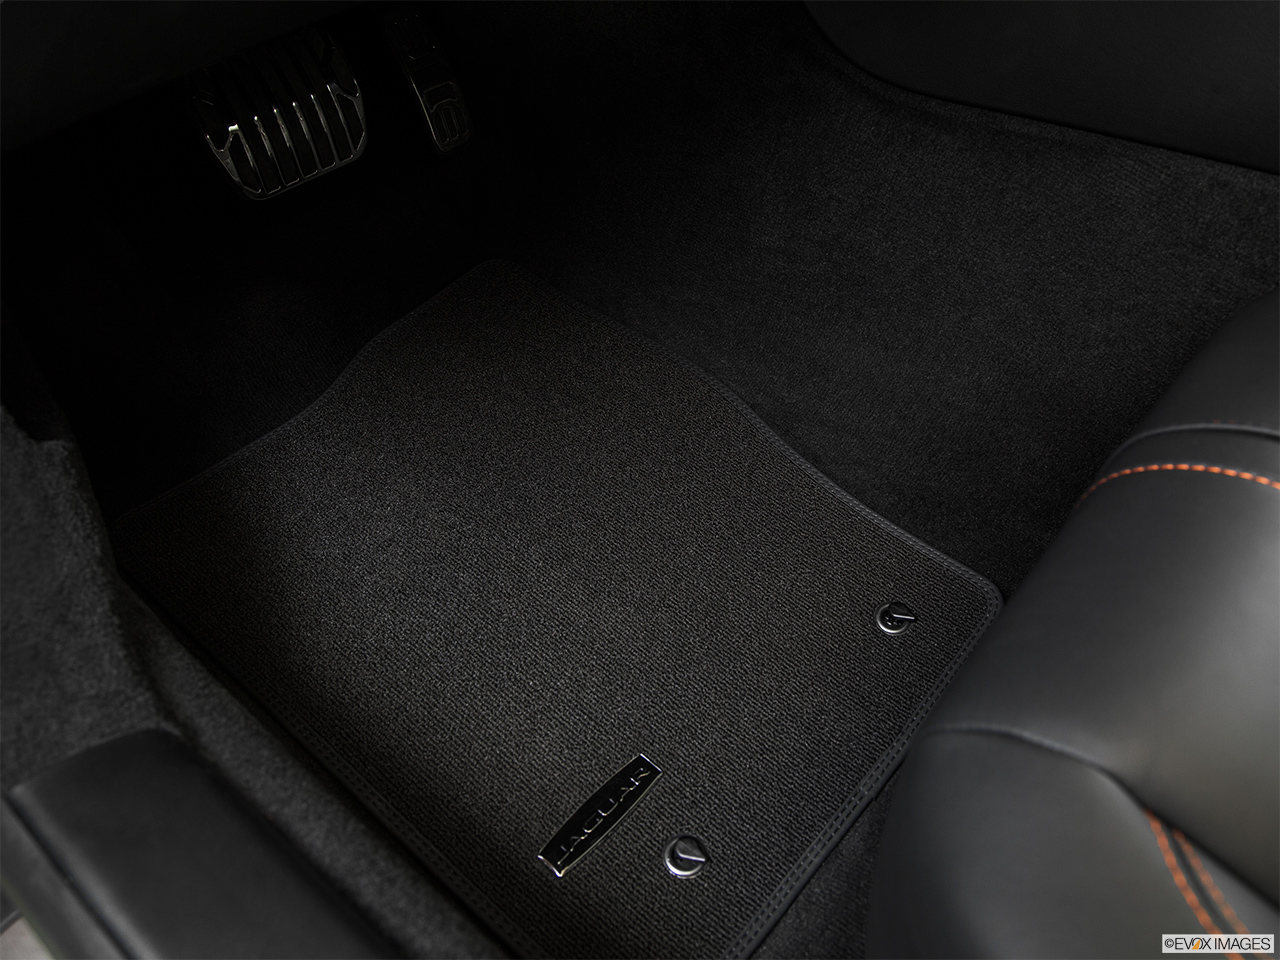 2015 Jaguar F-Type Convertible V8 S Driver's floor mat and pedals. Mid-seat level from outside looking in.